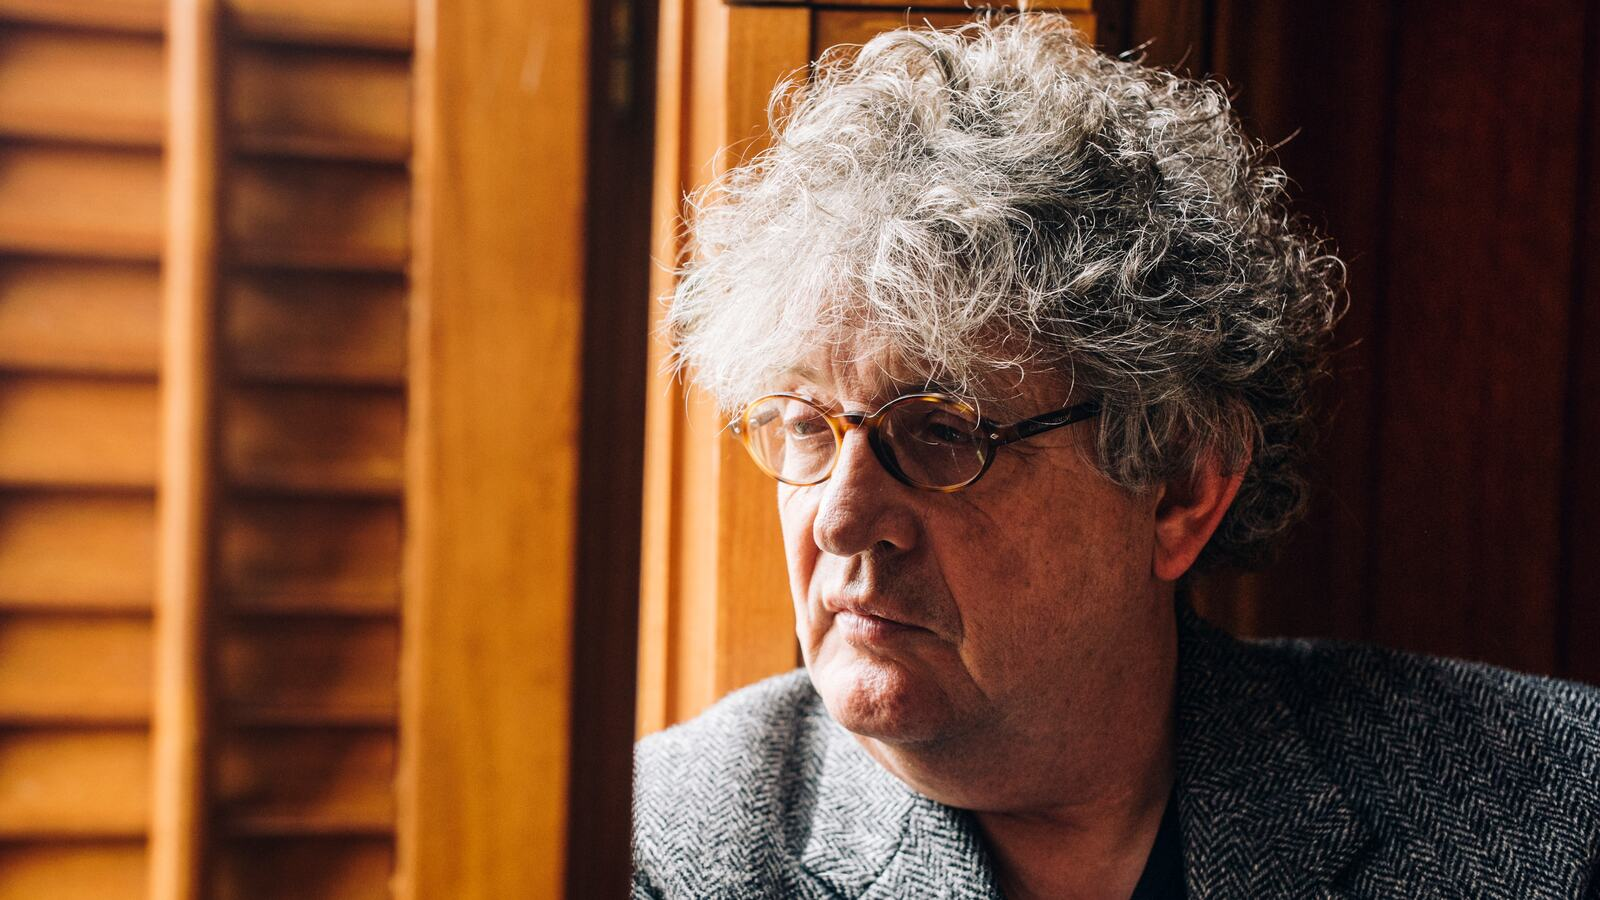 Paul Muldoon, poet